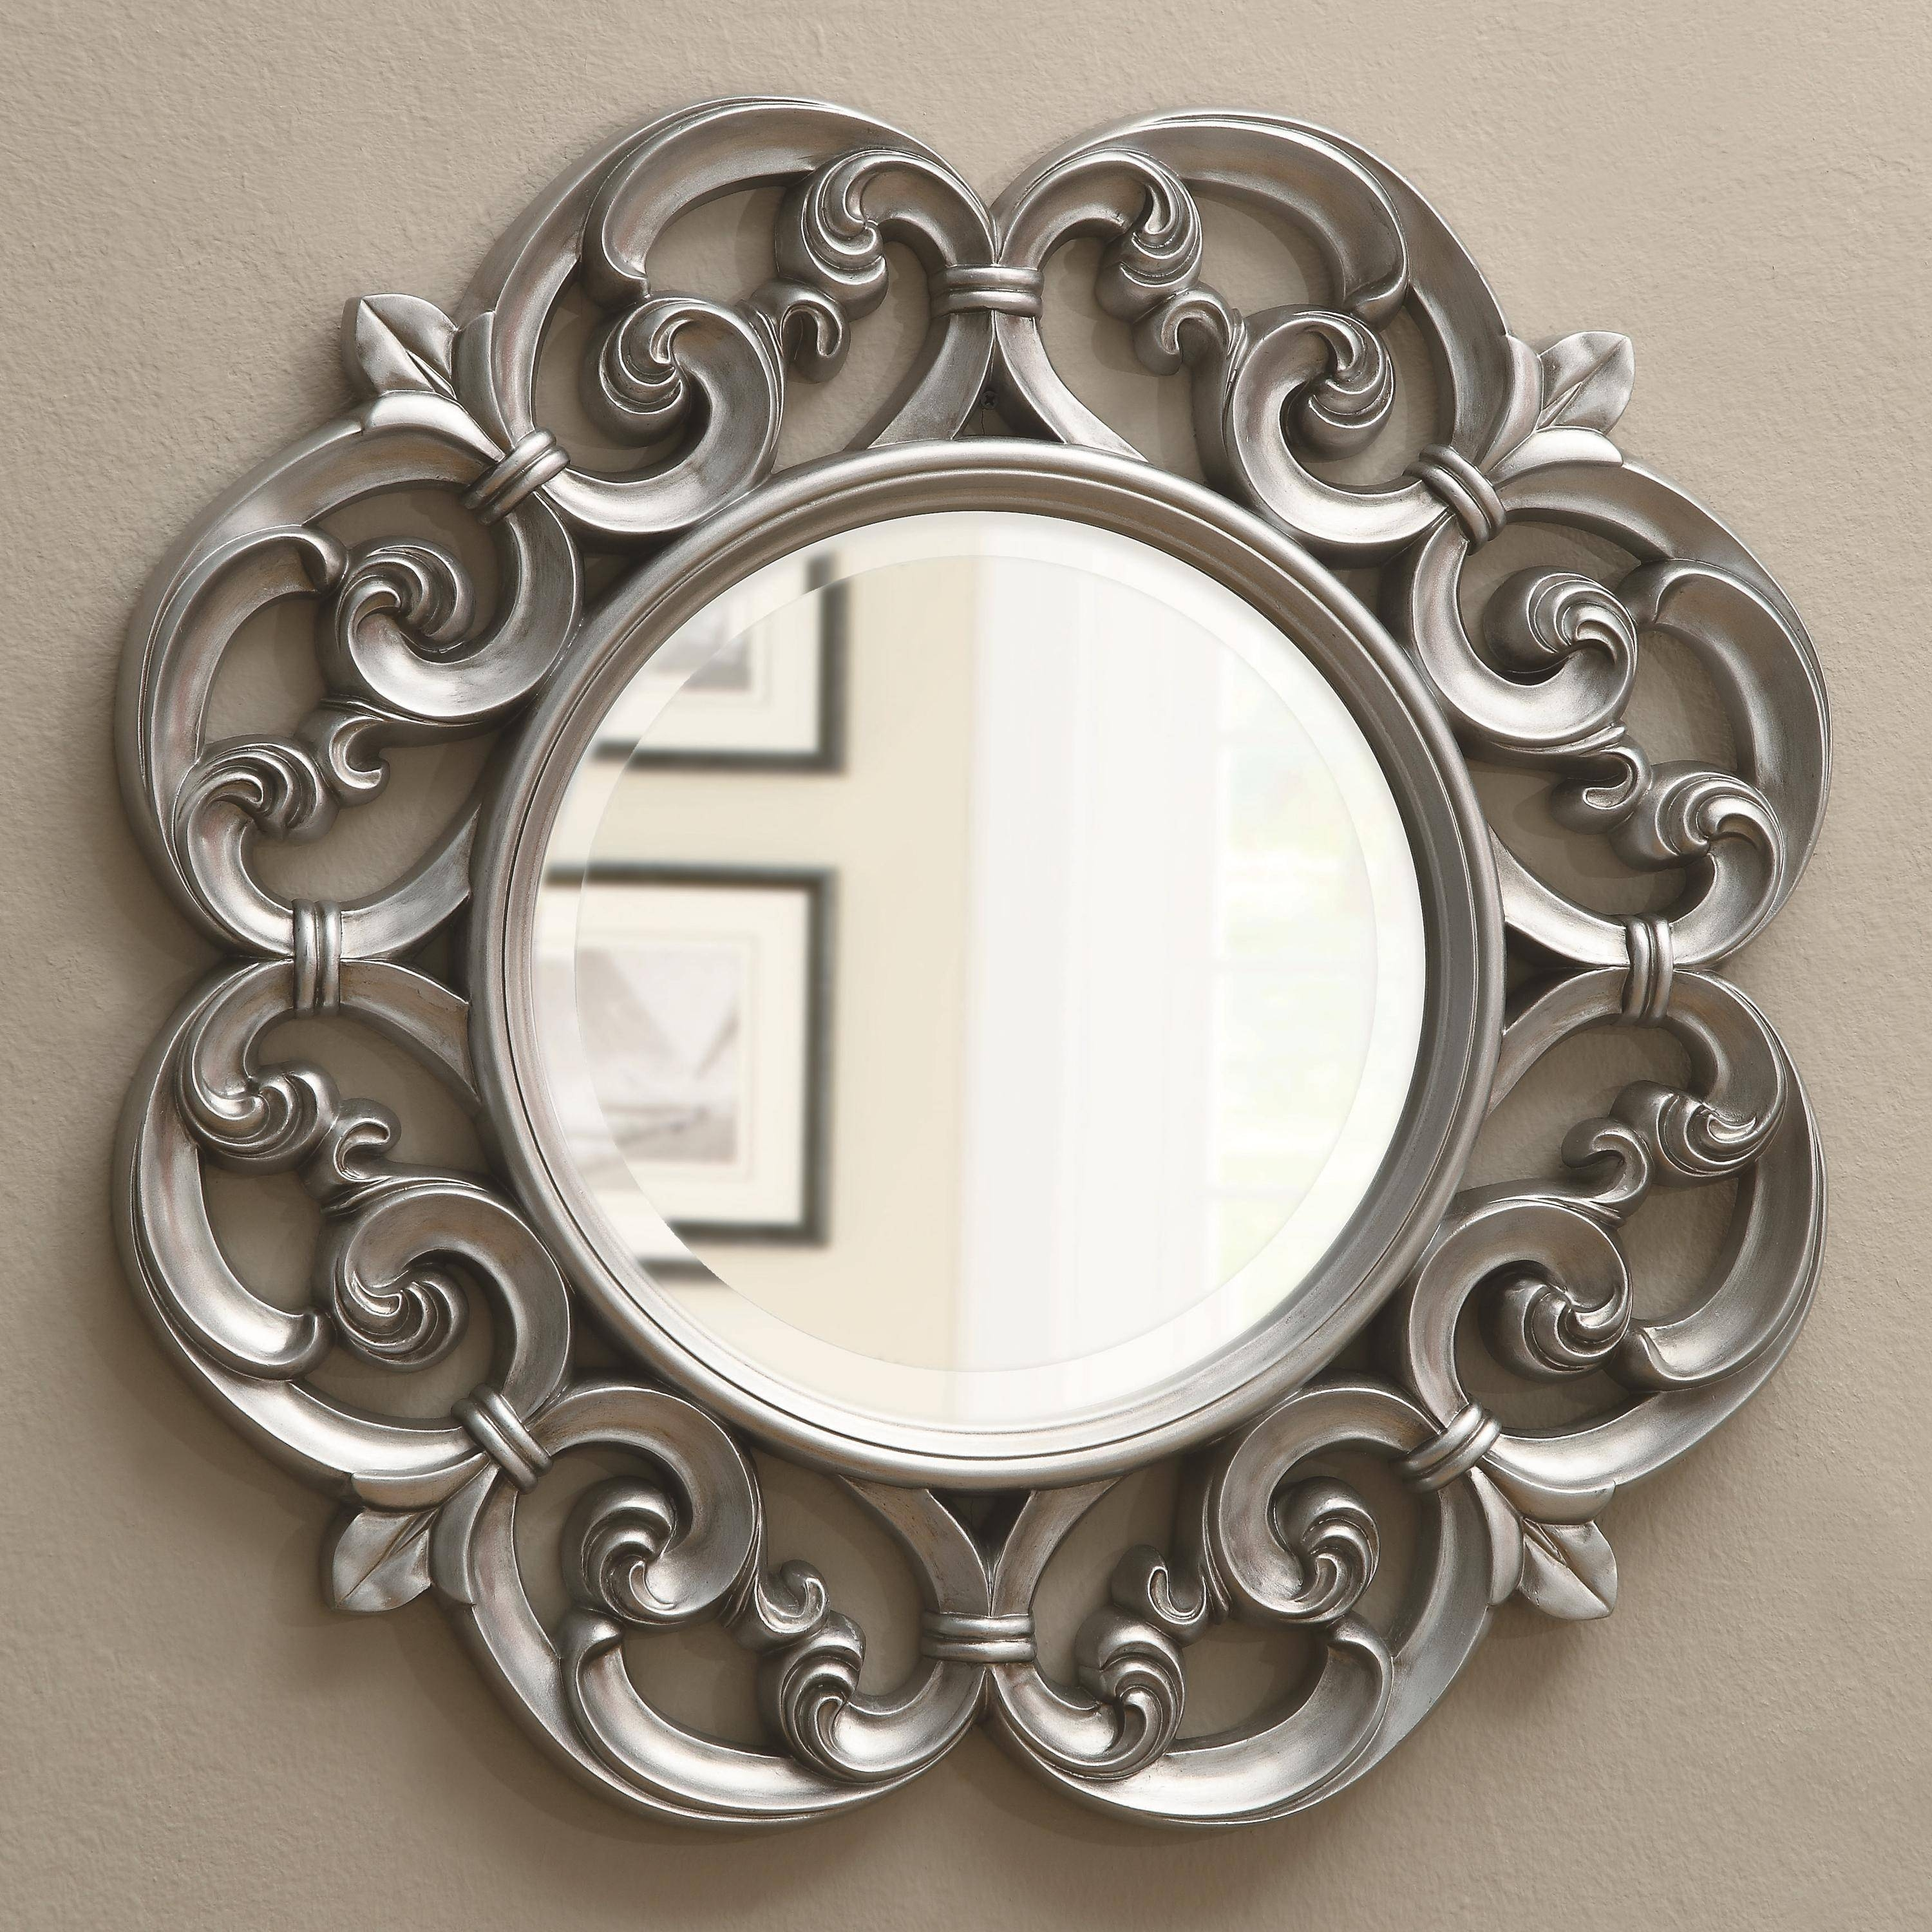 Mirrors Ornate Round Mirror with regard to Ornate Round Mirrors (Image 17 of 25)